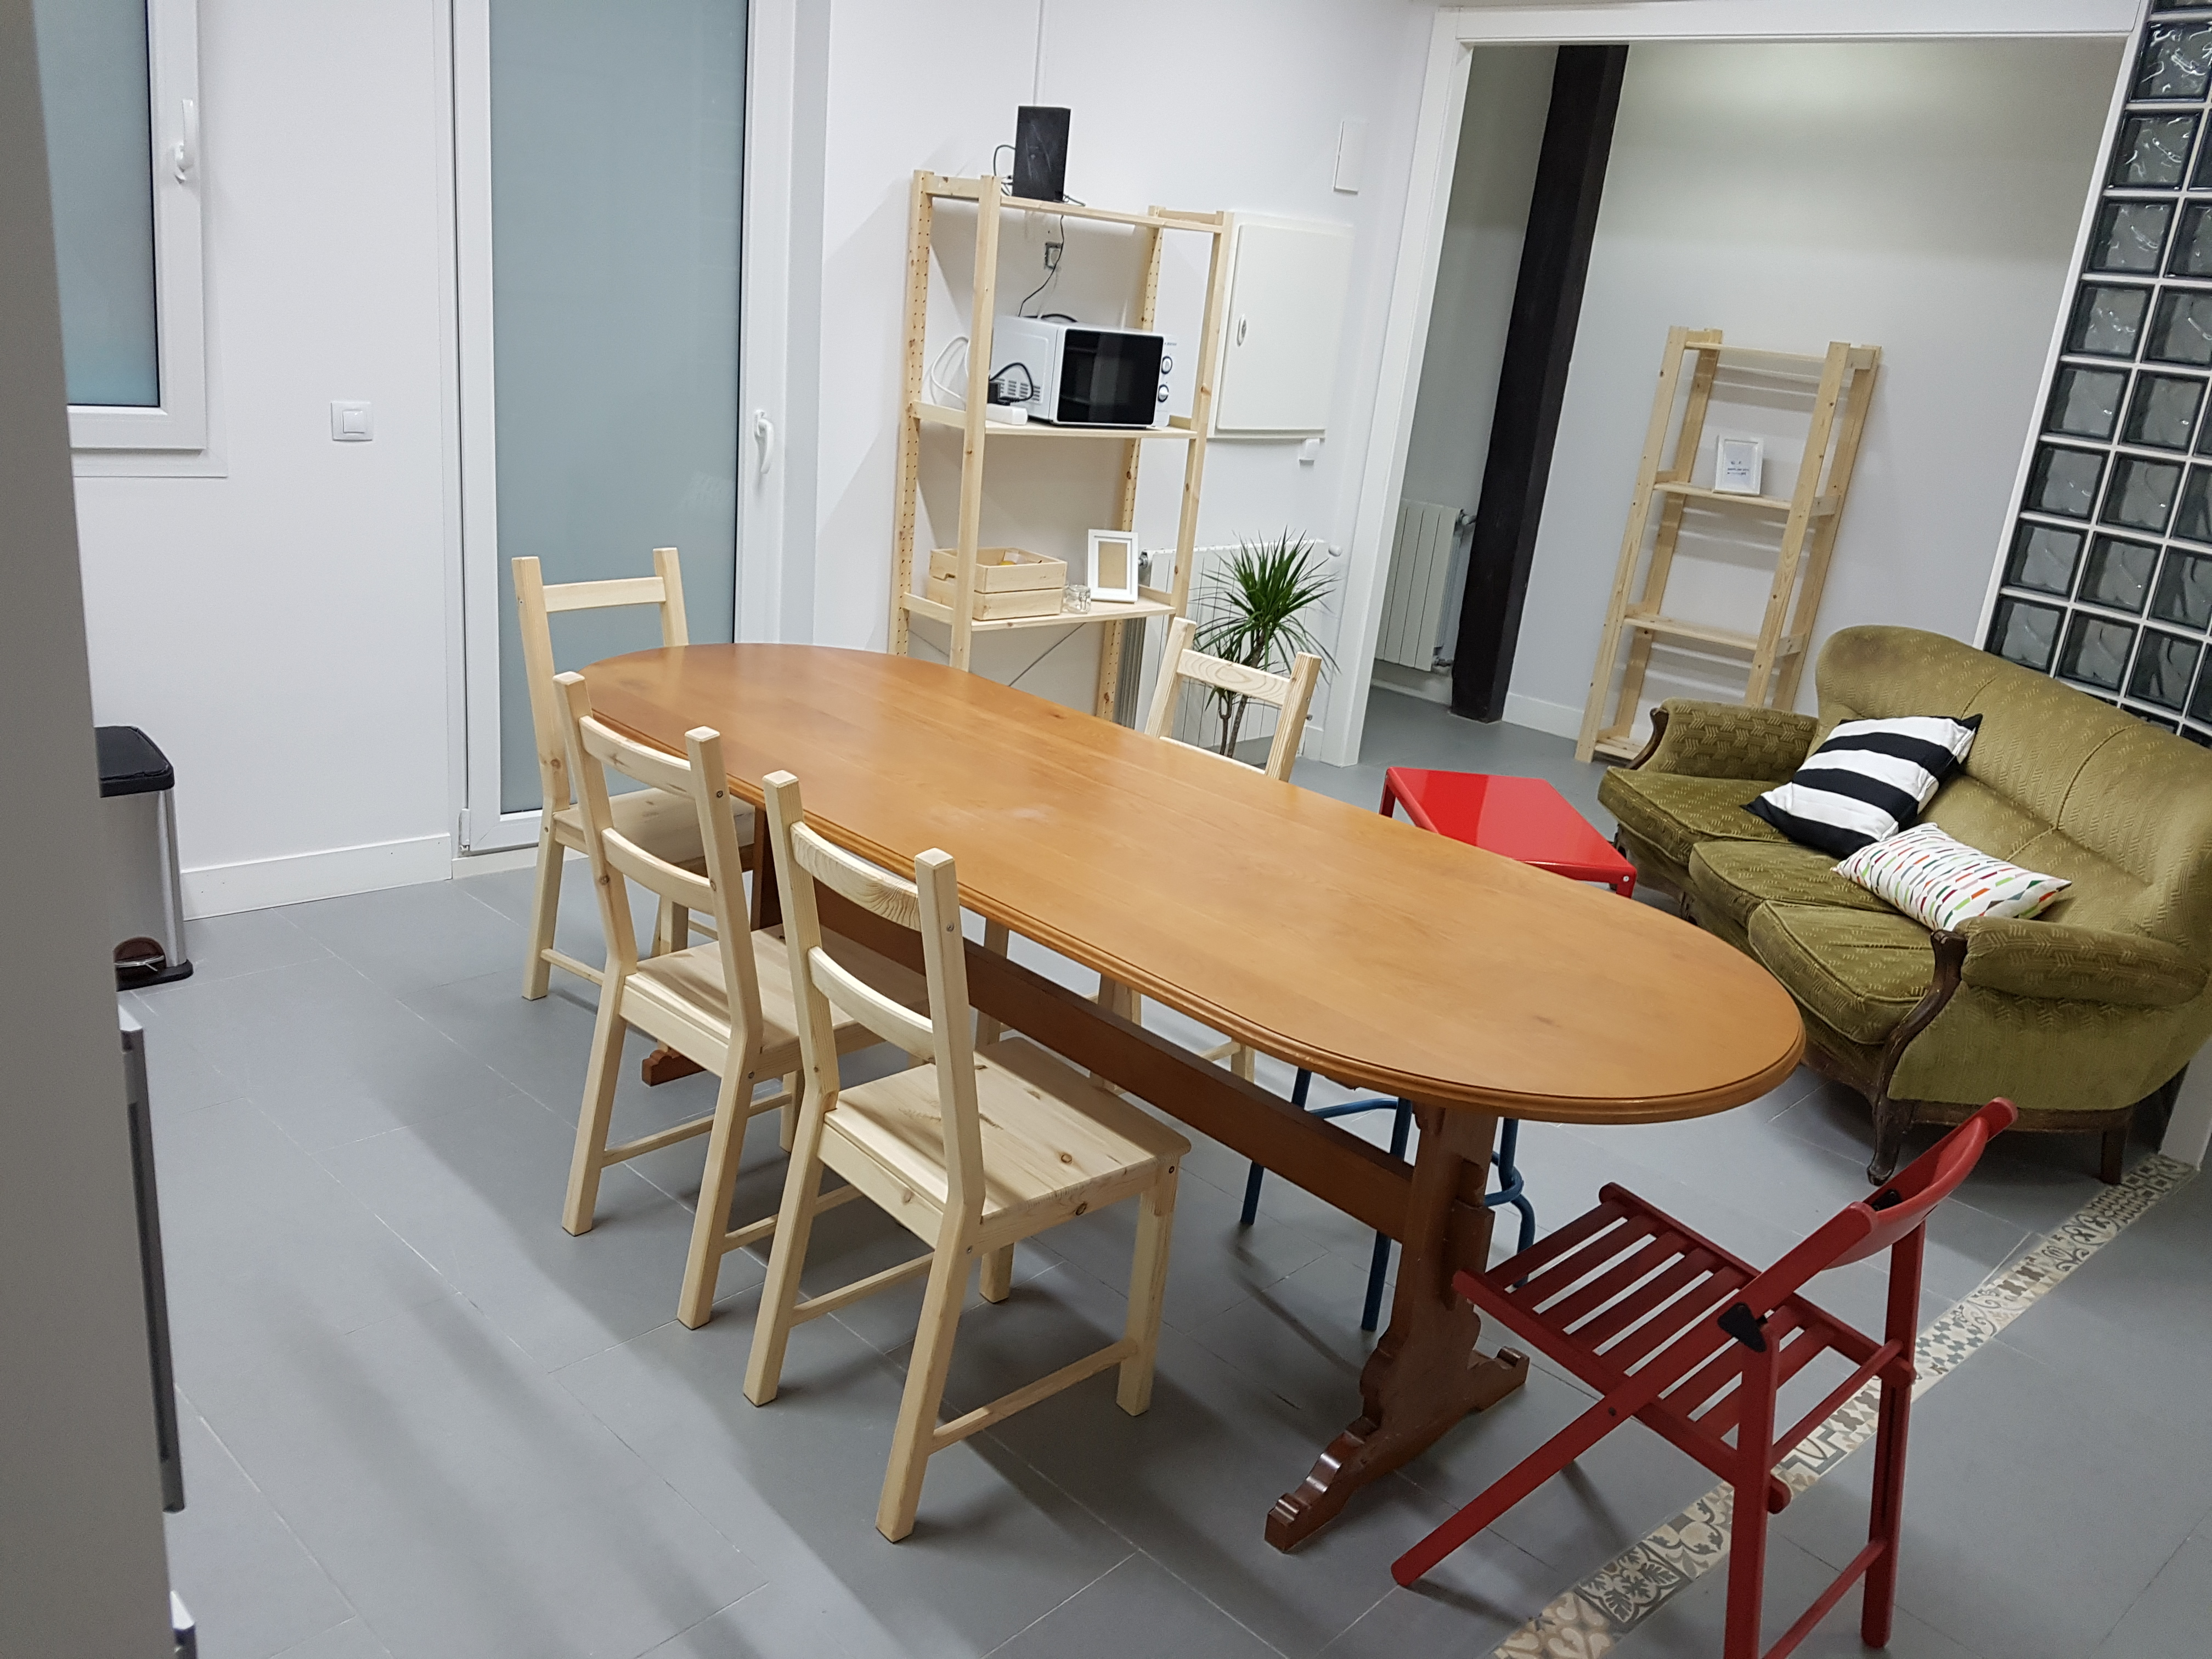 Kitchen & chill out area, here's where you can enjoy a serve yourself breakfast